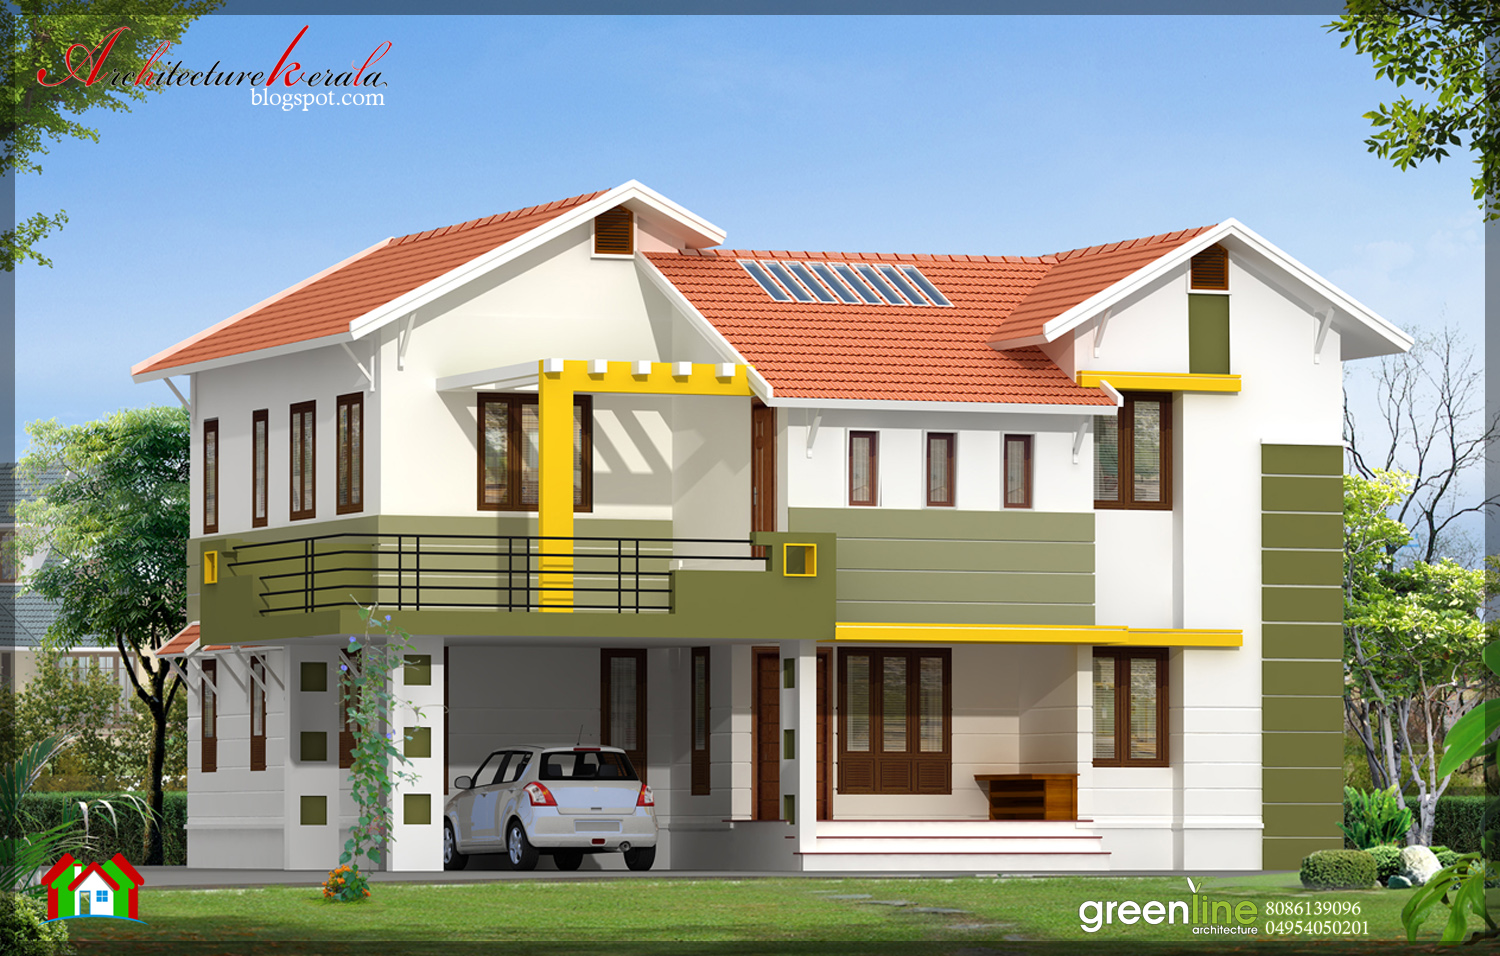 Architecture kerala 4 bhk contemporary style indian home for Home designs in kerala